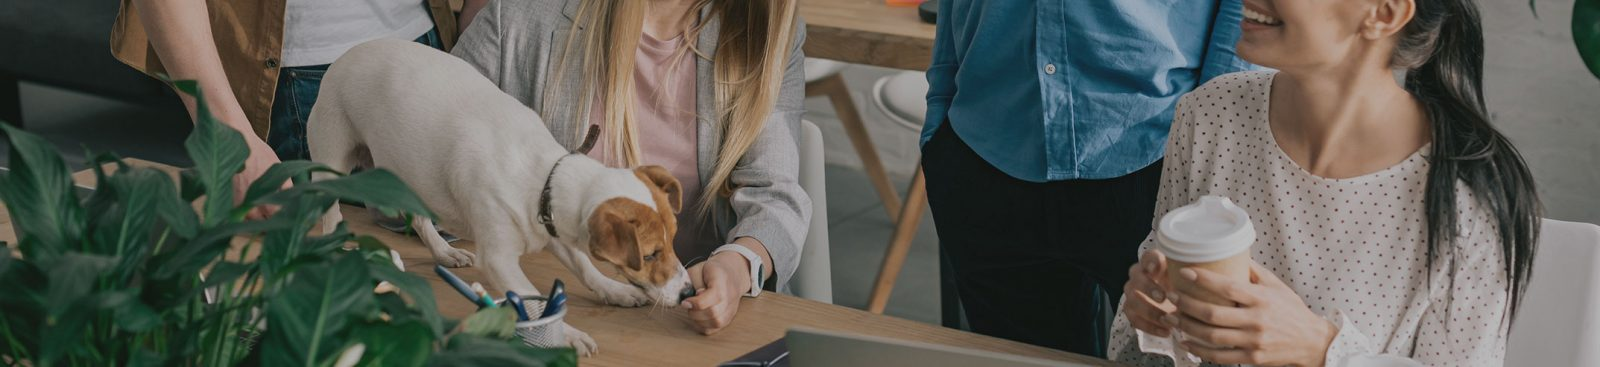 The pros and cons of a pet-friendly office image